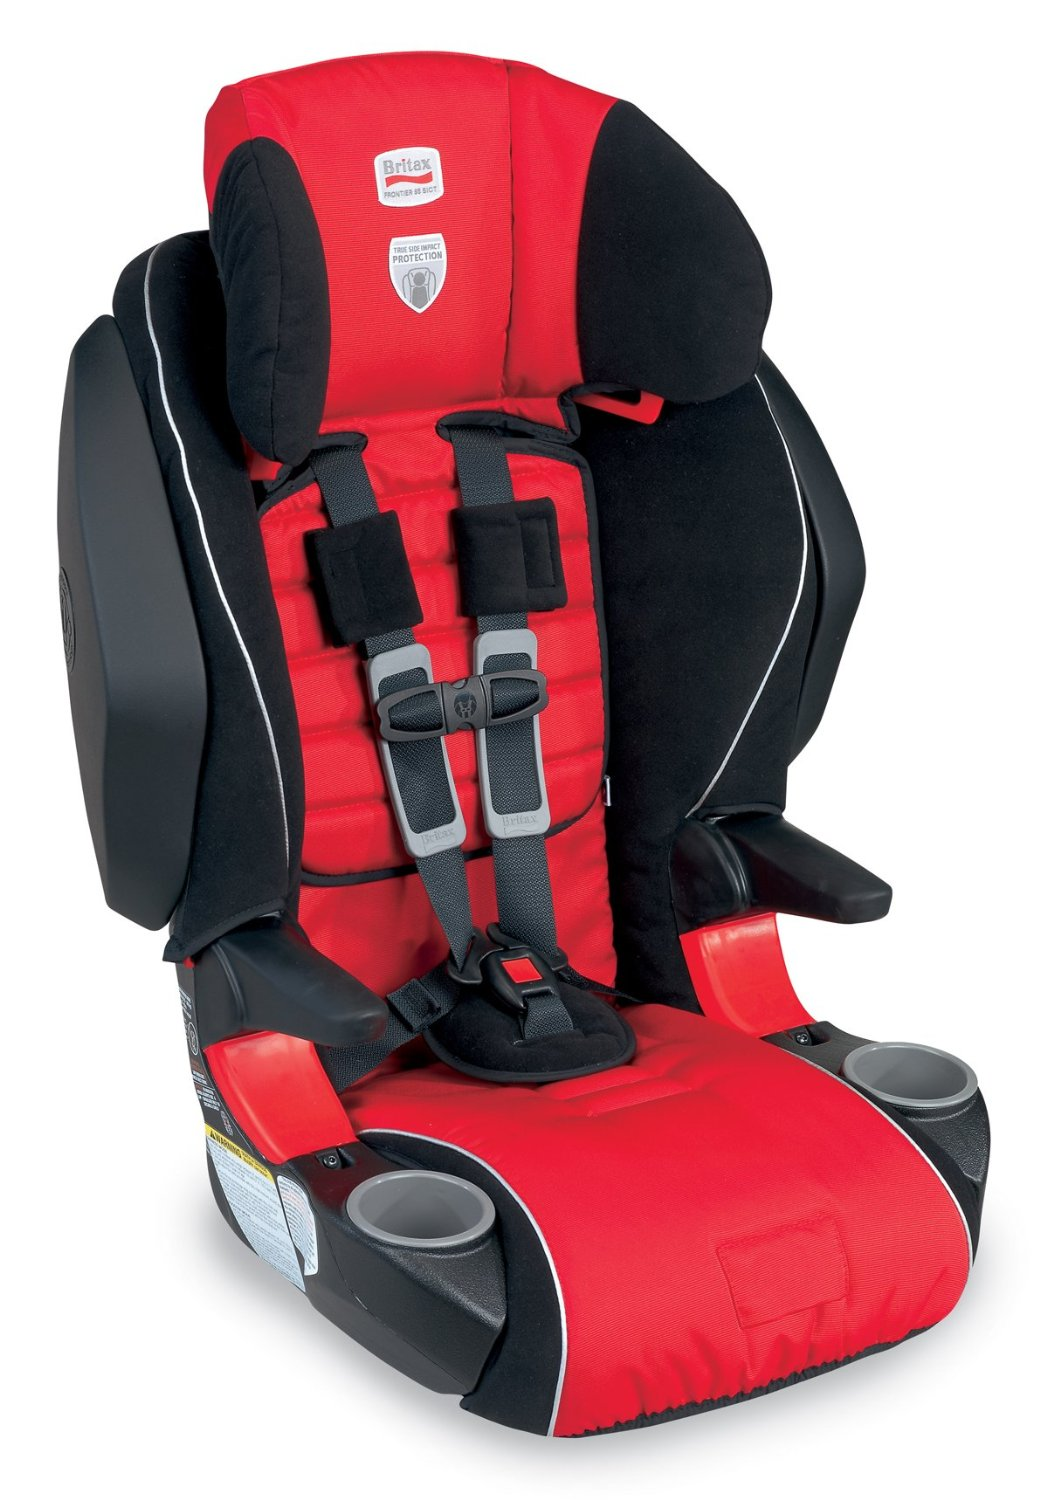 Britax Frontier 85 SICT -Should You Buy The Frontier 85 SICT?